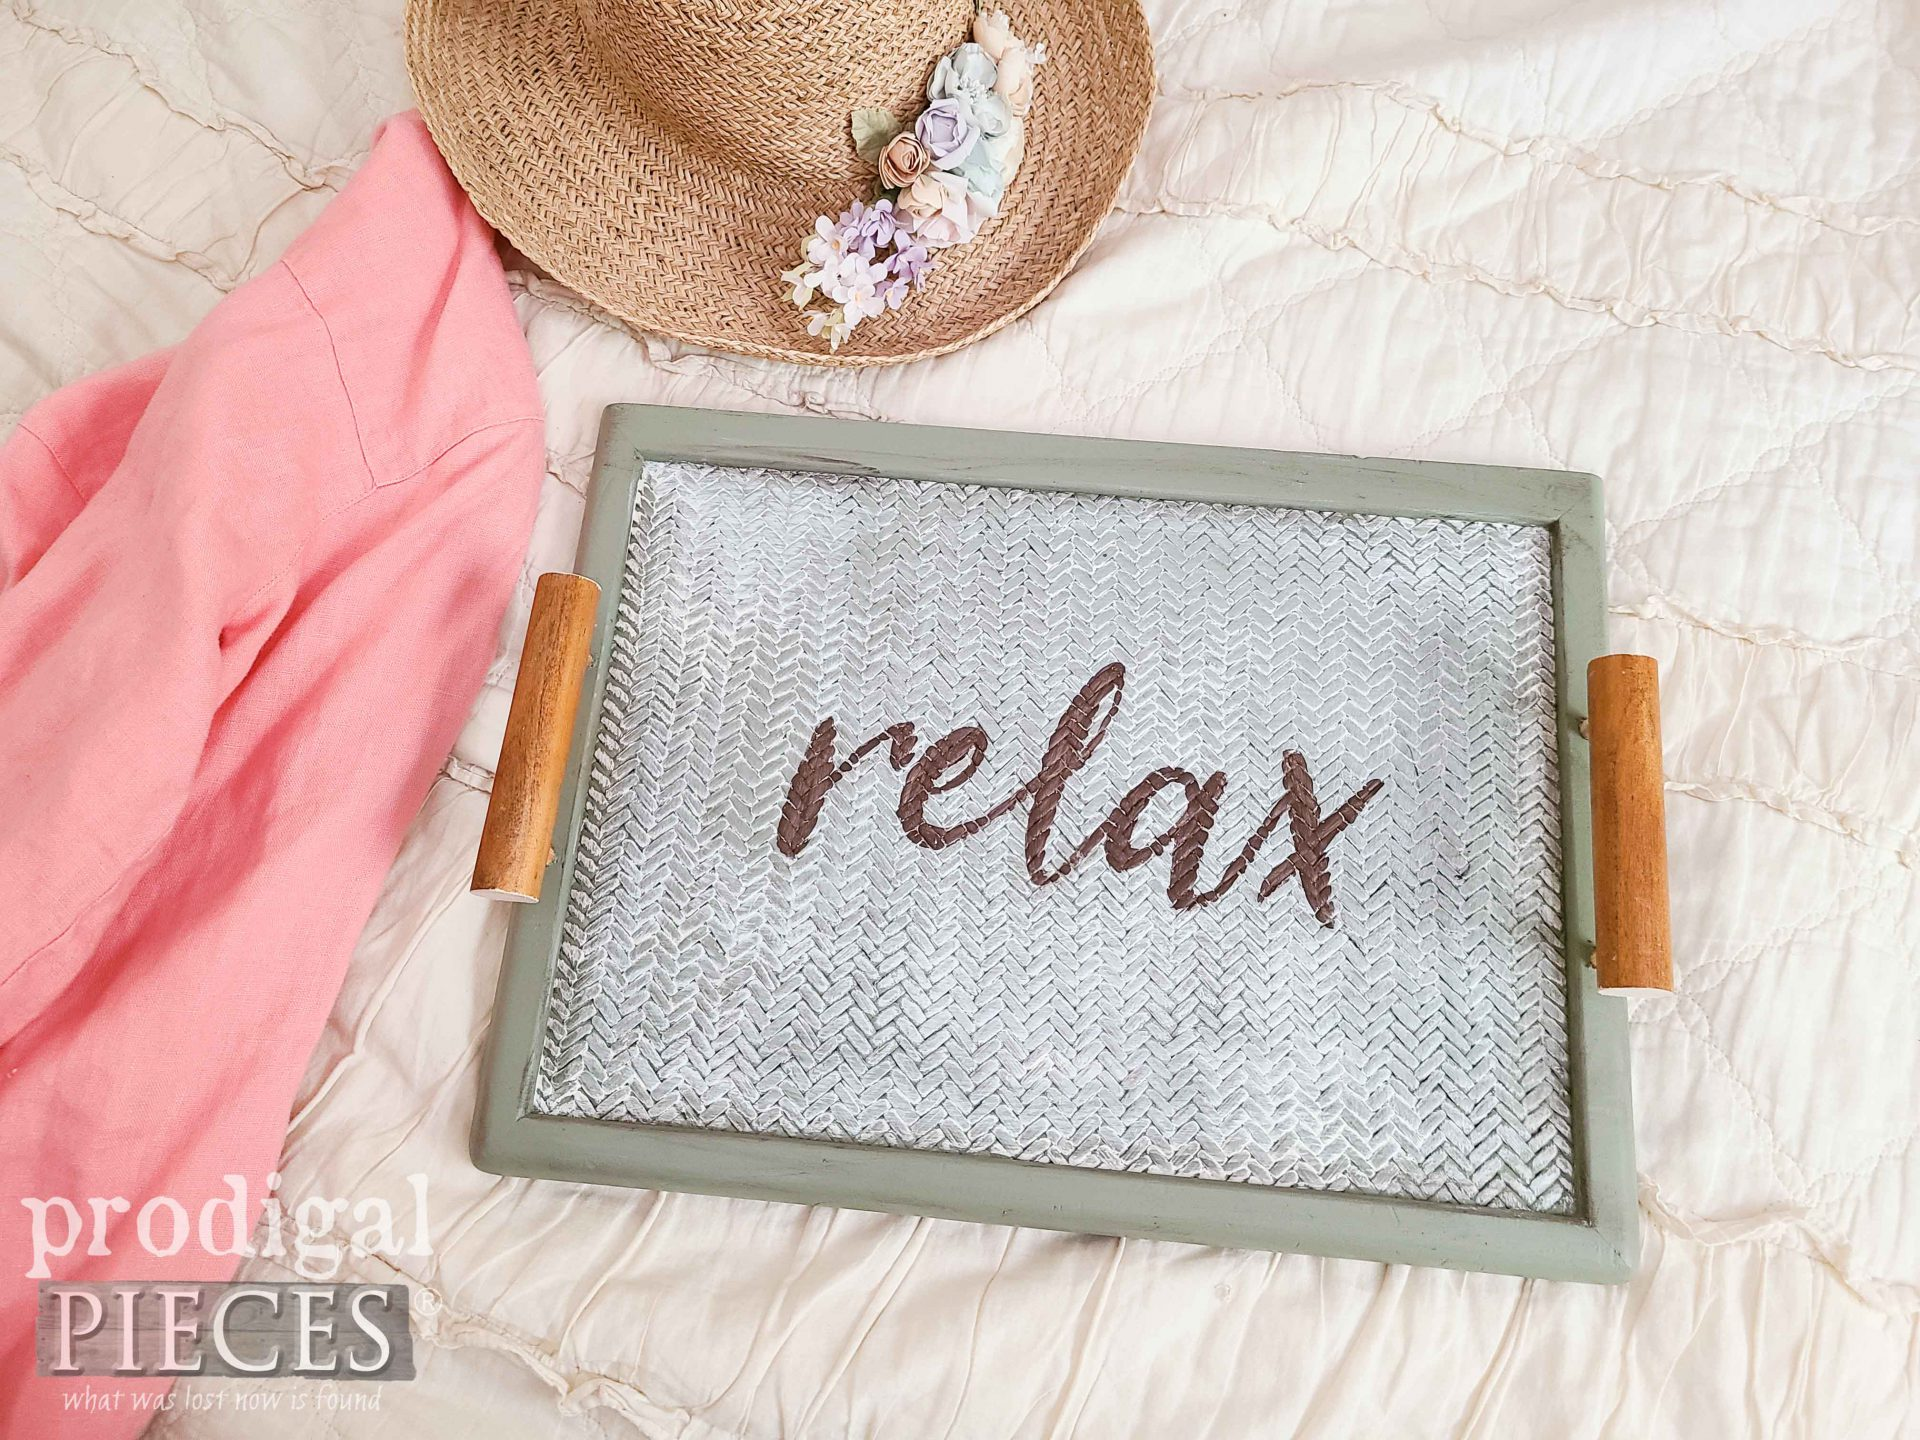 """Handmade """"Relax"""" Bed Tray made by Larissa of Prodigal Pieces 